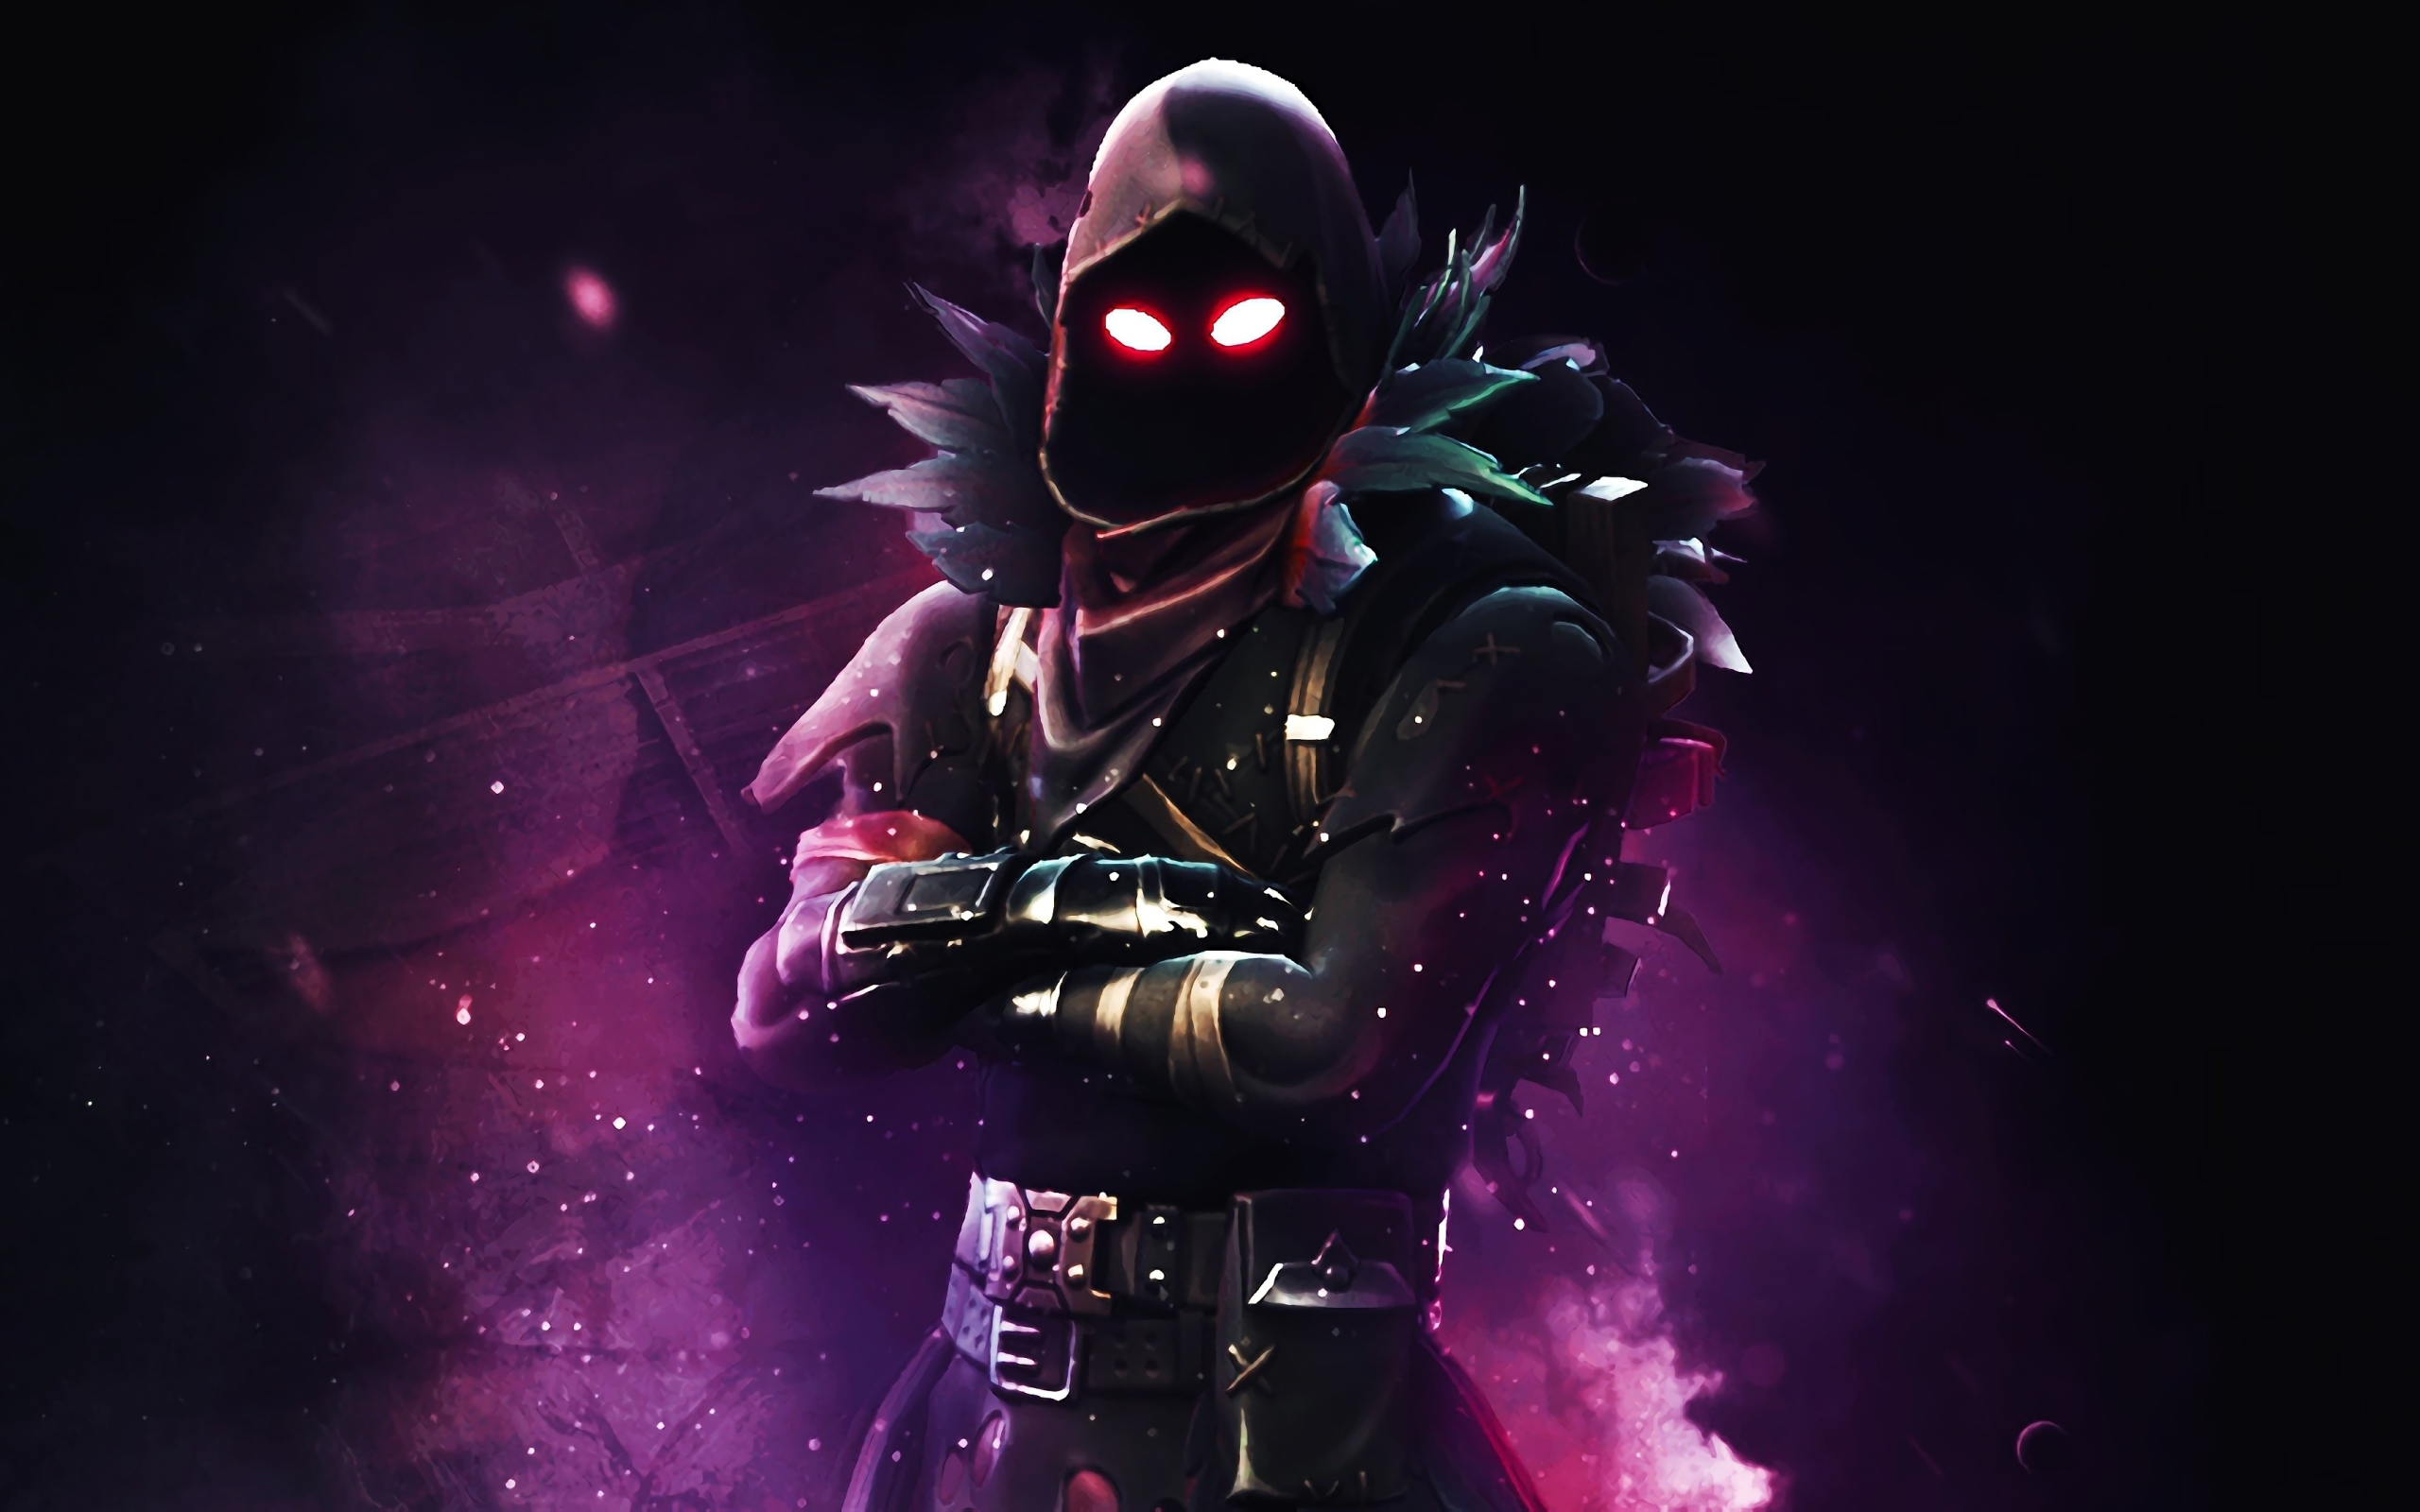 2560x1600 Raven Fortnite Battle Royale 4k 2560x1600 Resolution Background Hd Games 4k Wallpapers Images Photos And Background